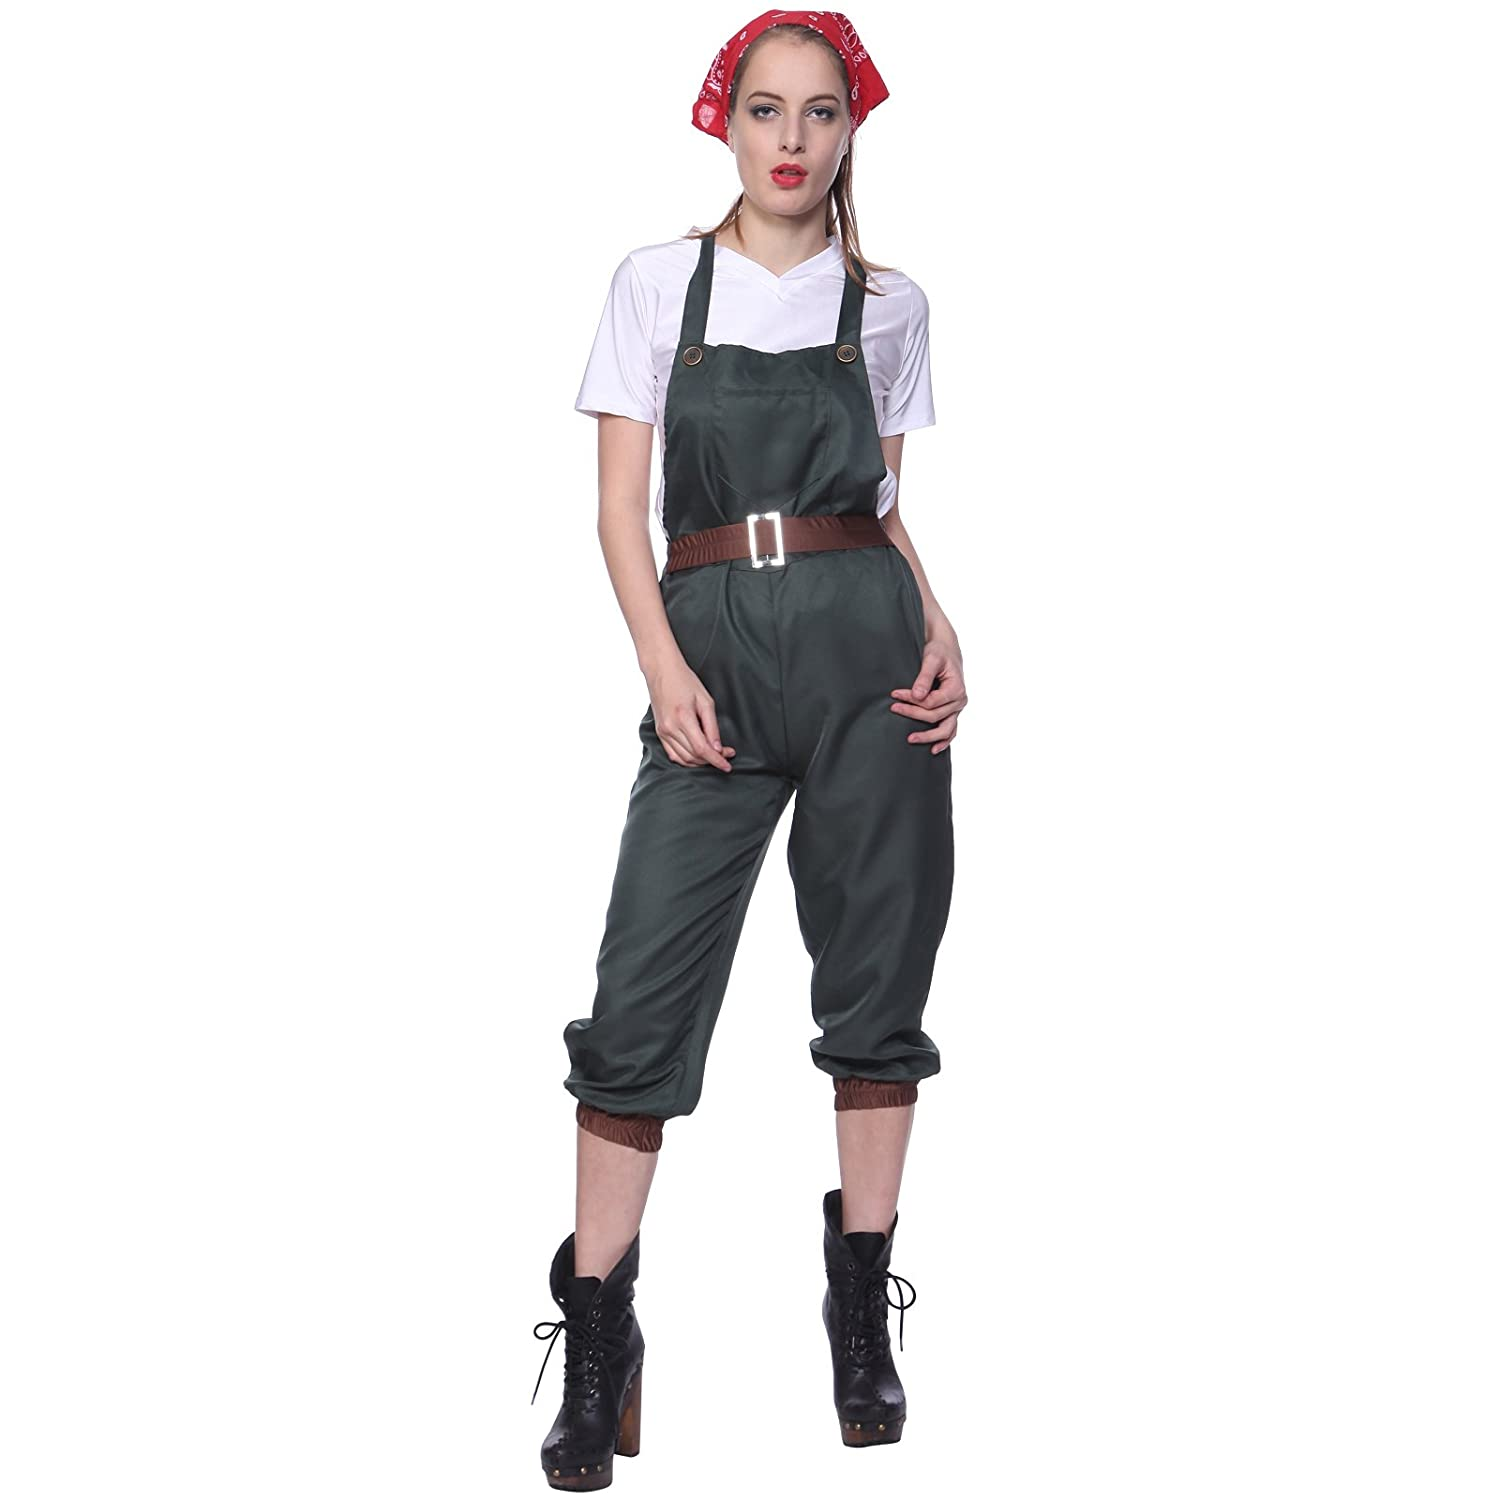 Vintage Overalls 1910s -1950s Pictures and History WW2 1940s Land Girl Costume World War 2 Wartime Uniform Fancy Dress $14.99 AT vintagedancer.com